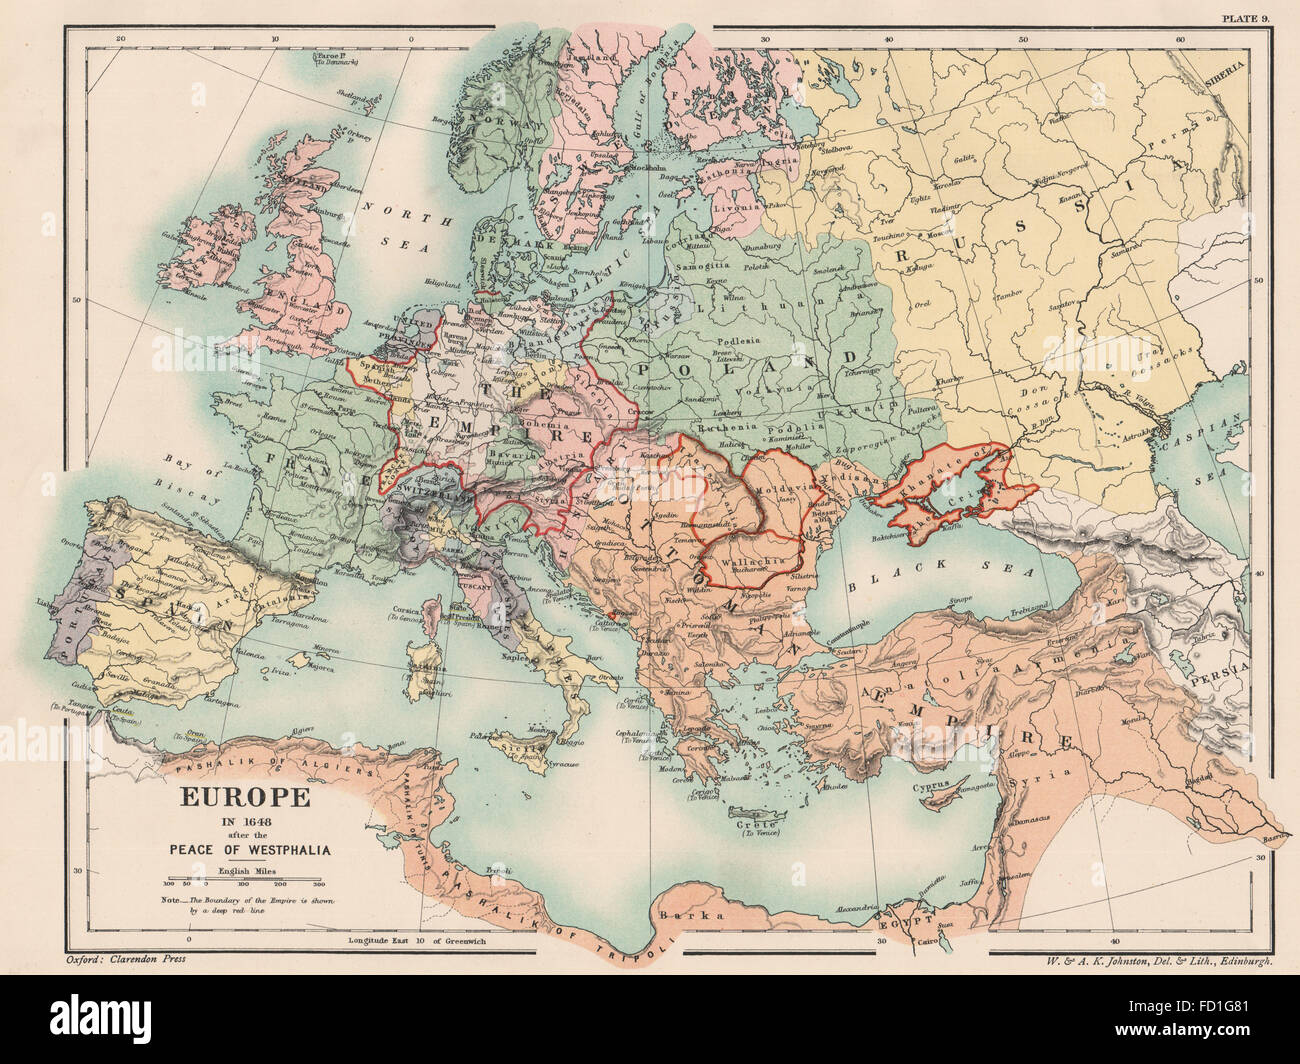 EUROPE IN 1648: After the Peace of Westphalia. Holy Roman Empire ...